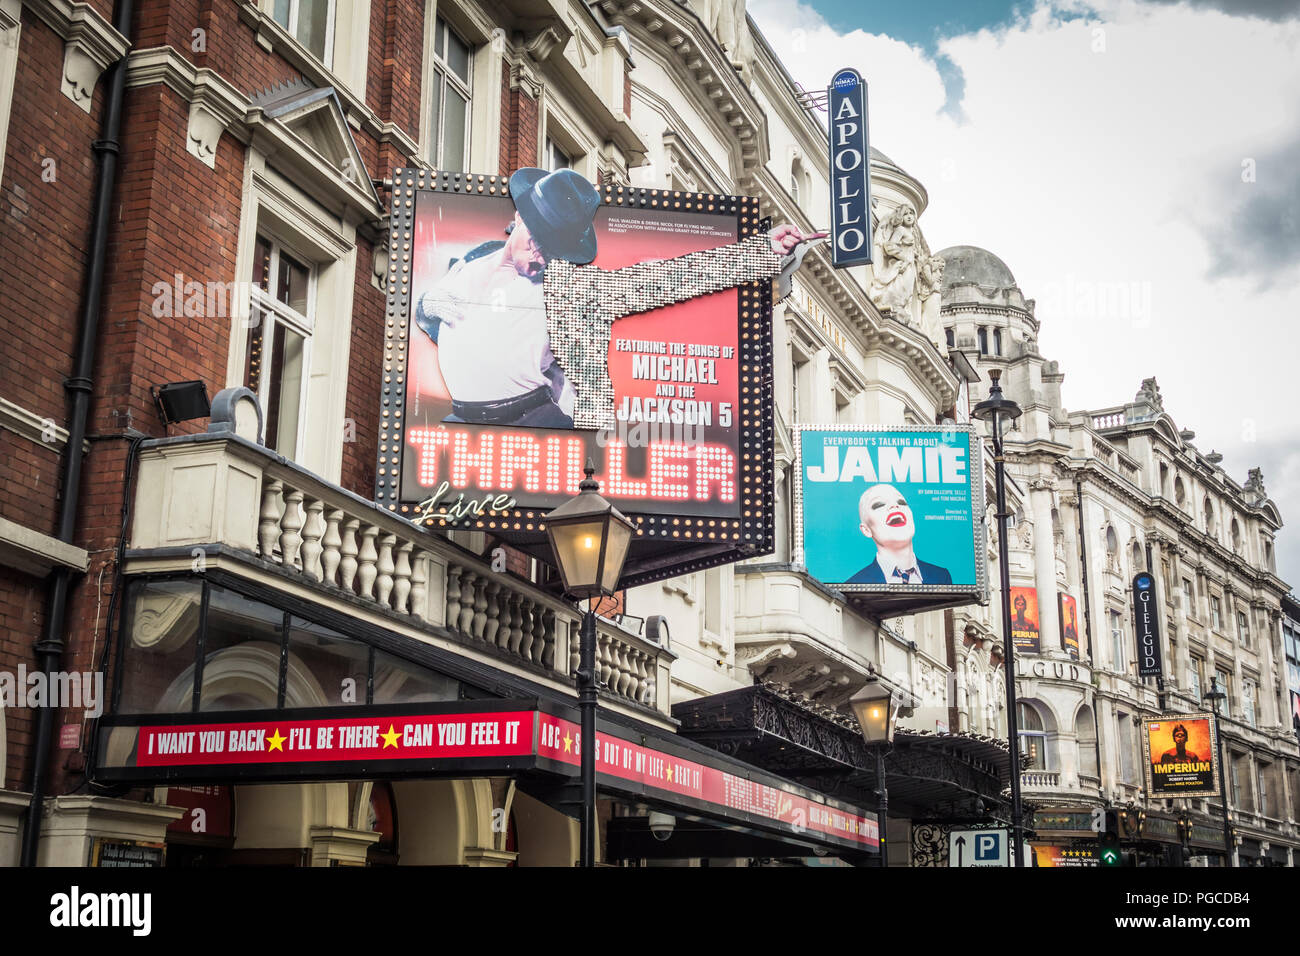 Michael Jackson's Thriller and Everybody's Talking About Jamie signage on Theatreland, Shaftesbury Avenue, London, UK - Stock Image